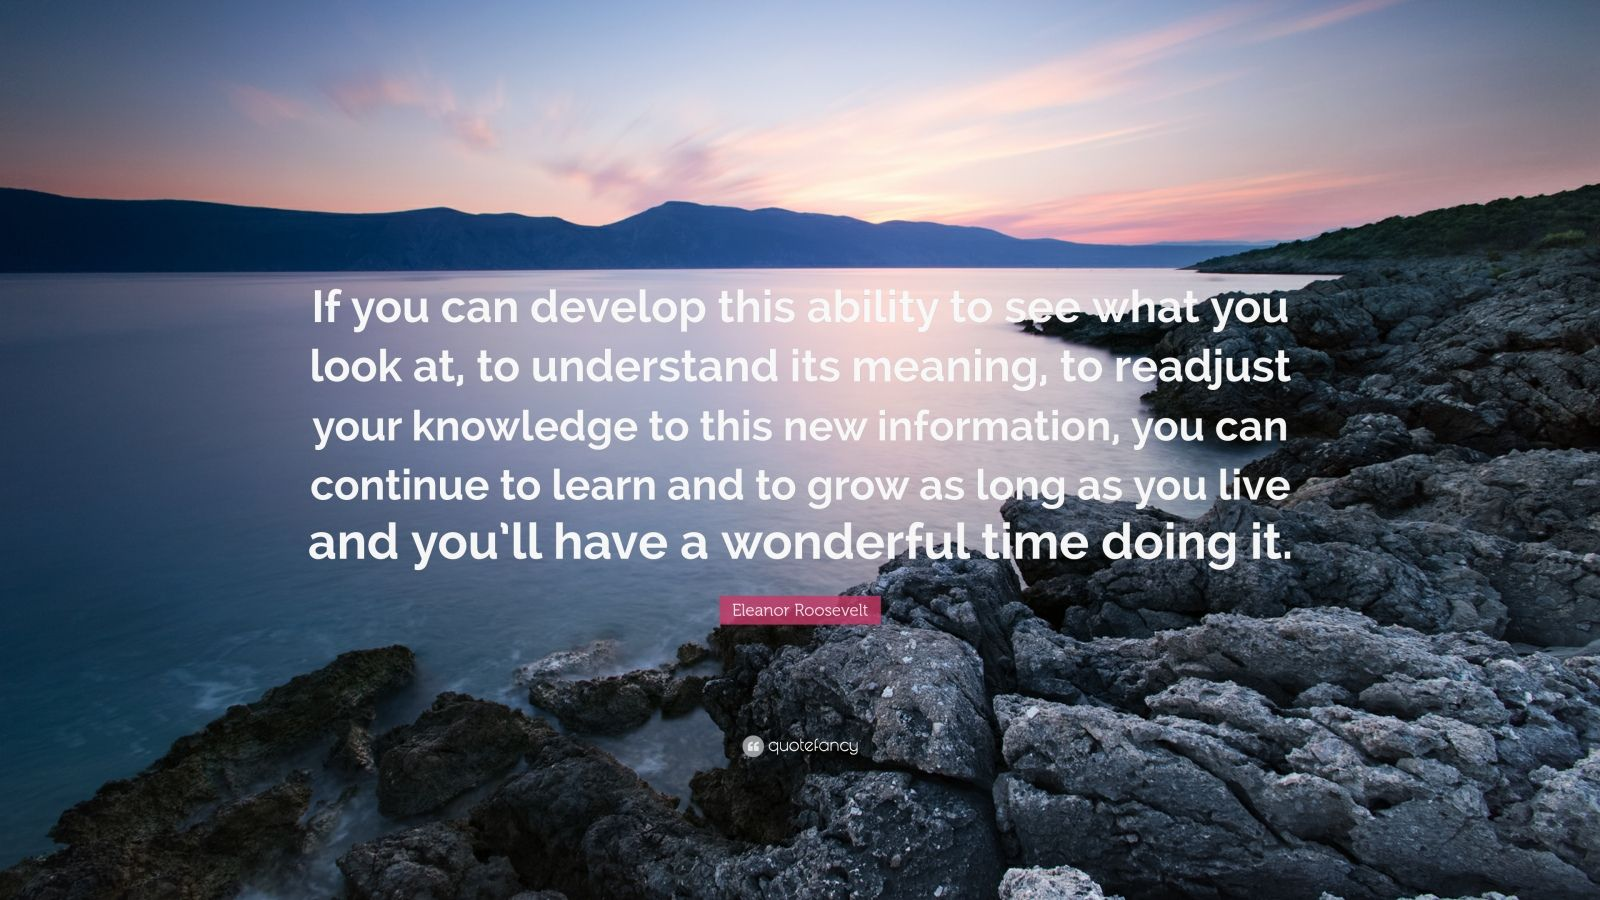 "Eleanor Roosevelt Quote: ""If you can develop this ability to see what you look at, to understand its meaning, to readjust your knowledge to this new information, you can continue to learn and to grow as long as you live and you'll have a wonderful time doing it."""